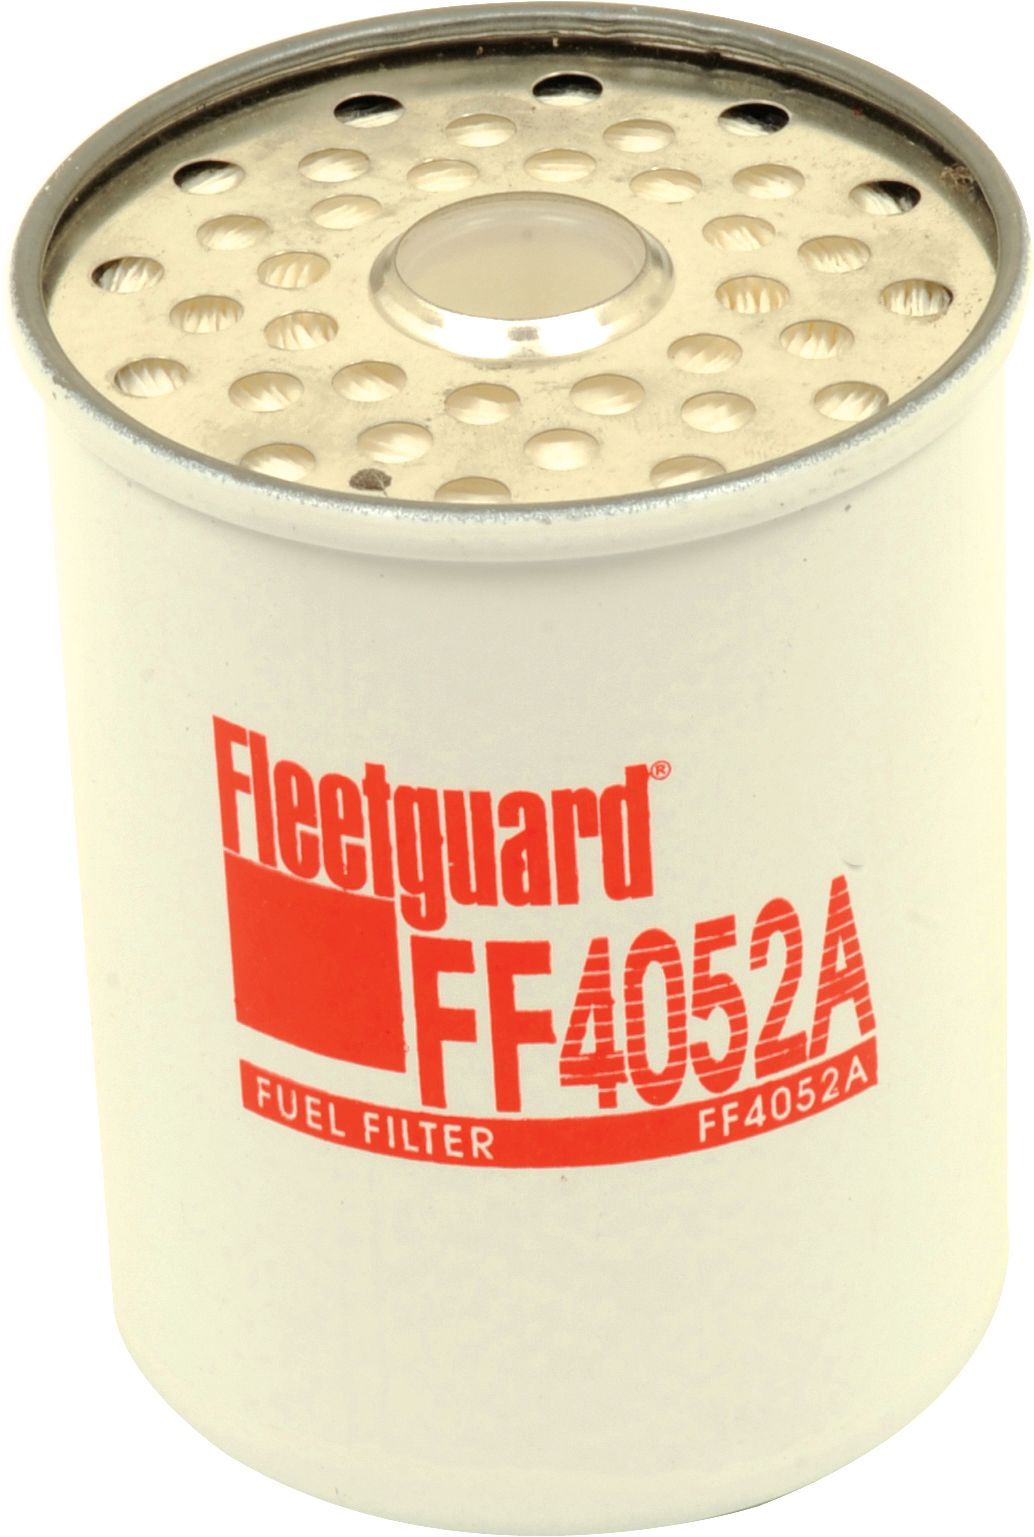 SAME FUEL FILTER FF4052A 109045